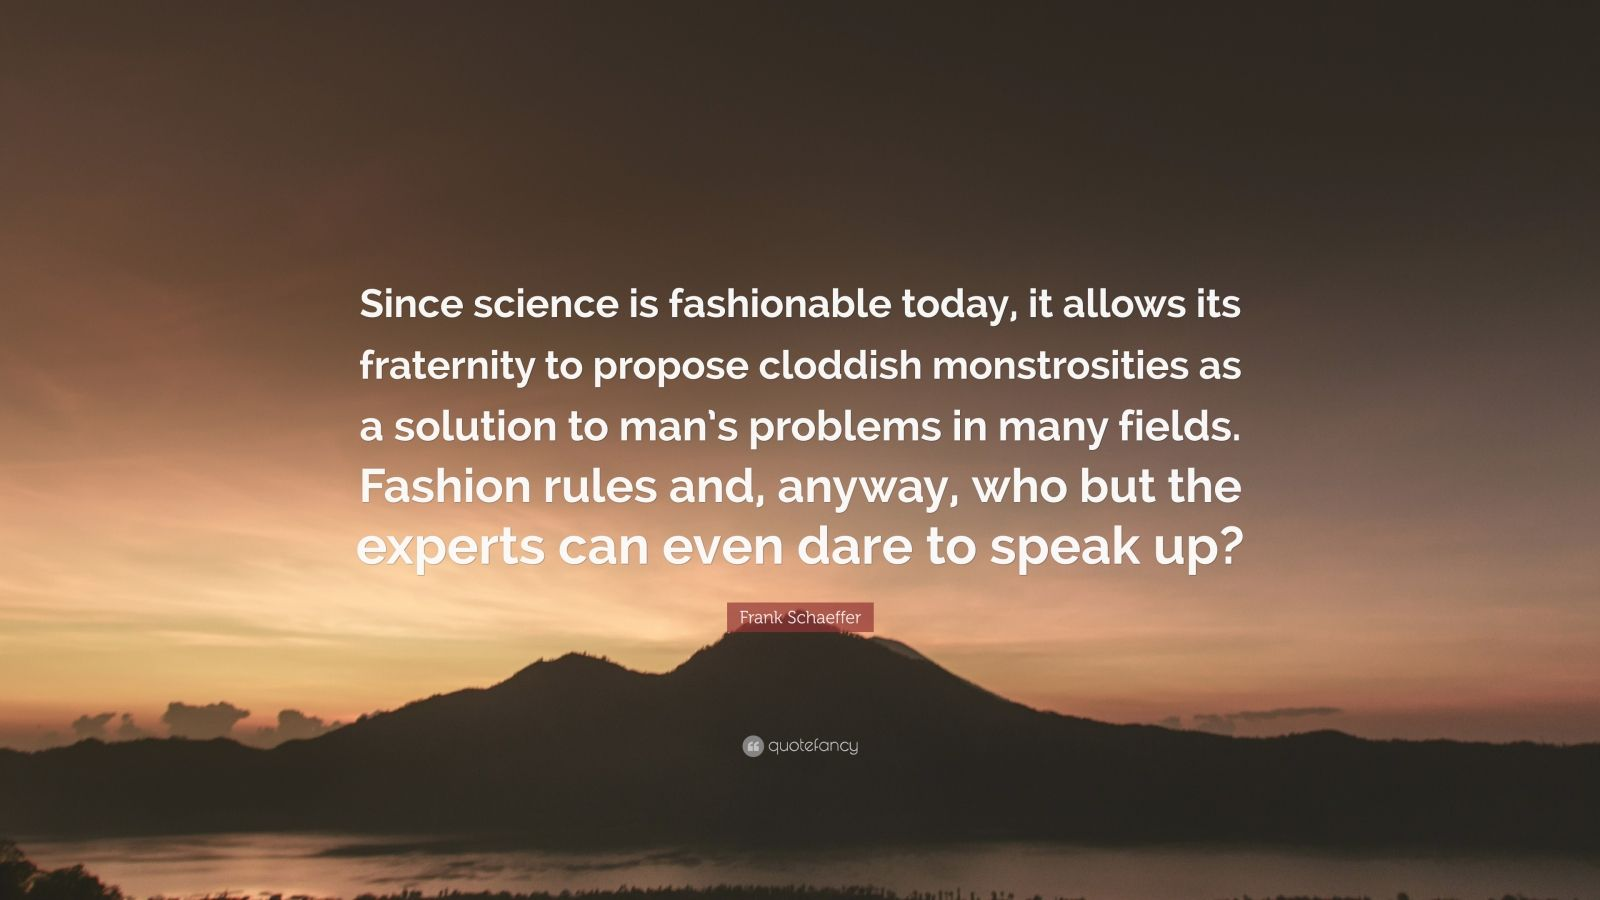 "Frank Schaeffer Quote: ""Since science is fashionable today, it allows its fraternity to propose cloddish monstrosities as a solution to man's problems in many fields. Fashion rules and, anyway, who but the experts can even dare to speak up?"""